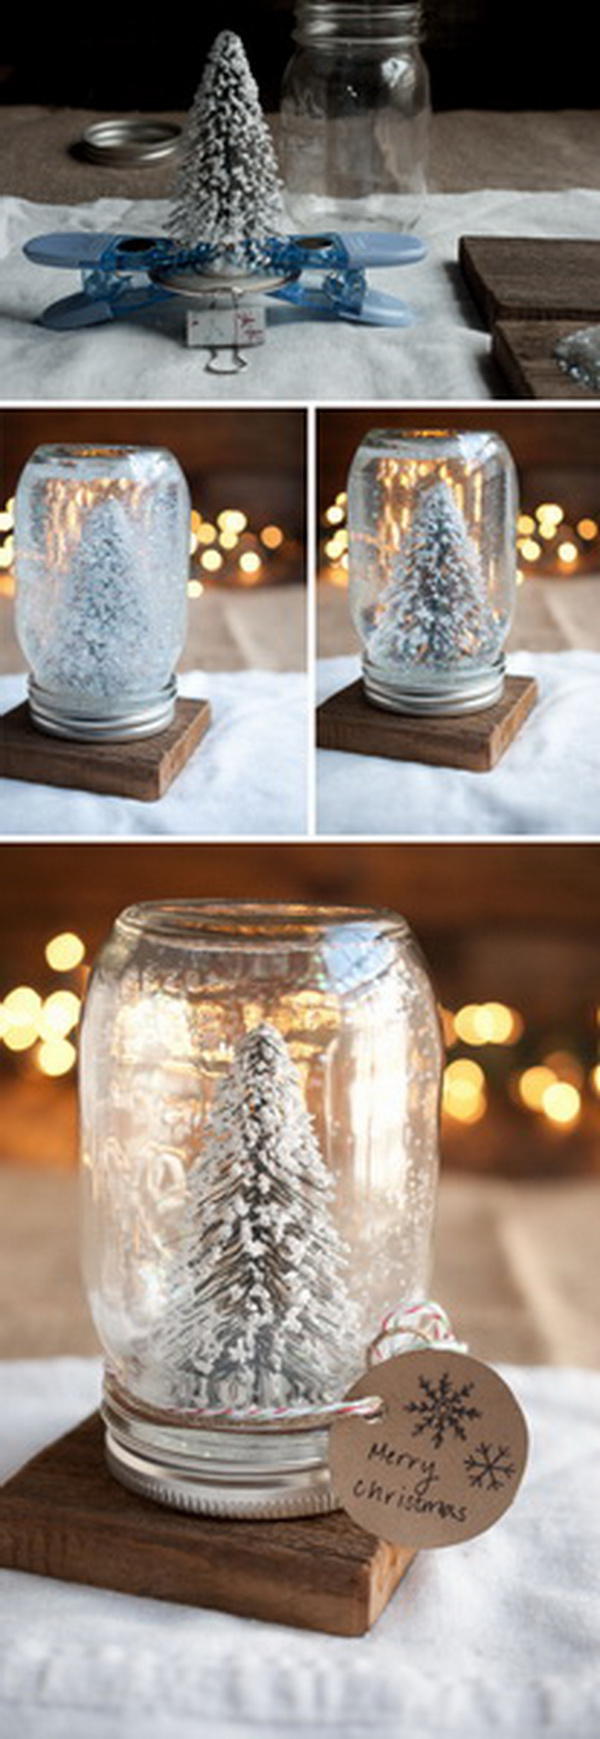 DIY Anthropologie Mason Jar Snow Globes: Get A Jar Fake Snow, Some Water,  Any Tree, Figurine, Ornament Or Pretty Items, You Can Make This Elegant  Snow ...